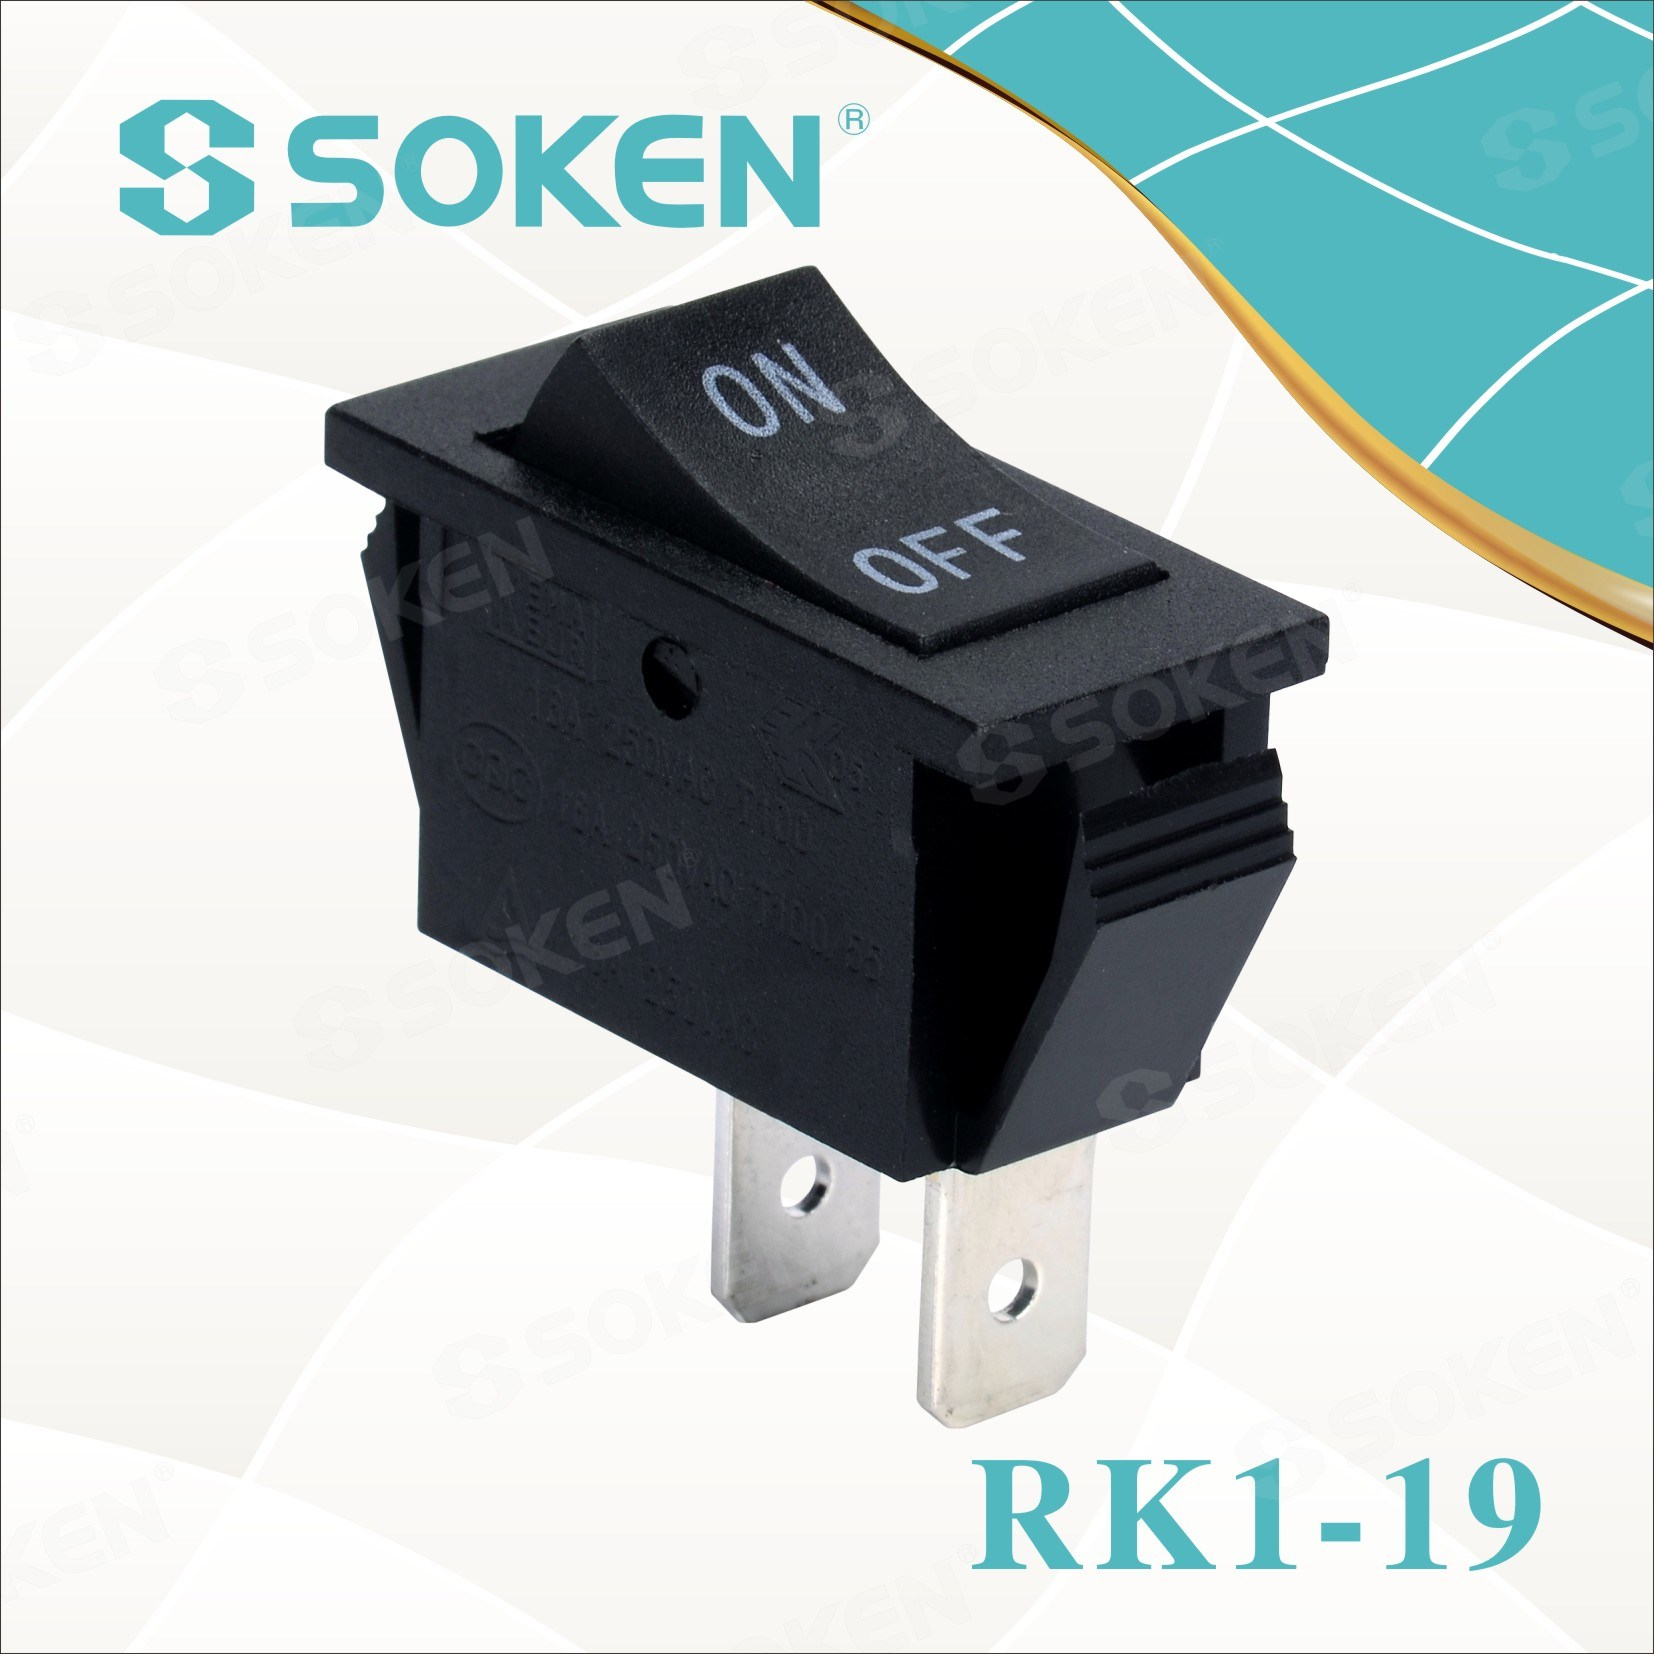 hight resolution of rapid delivery for decora rocker switch soken on off rocker switch master soken electrical